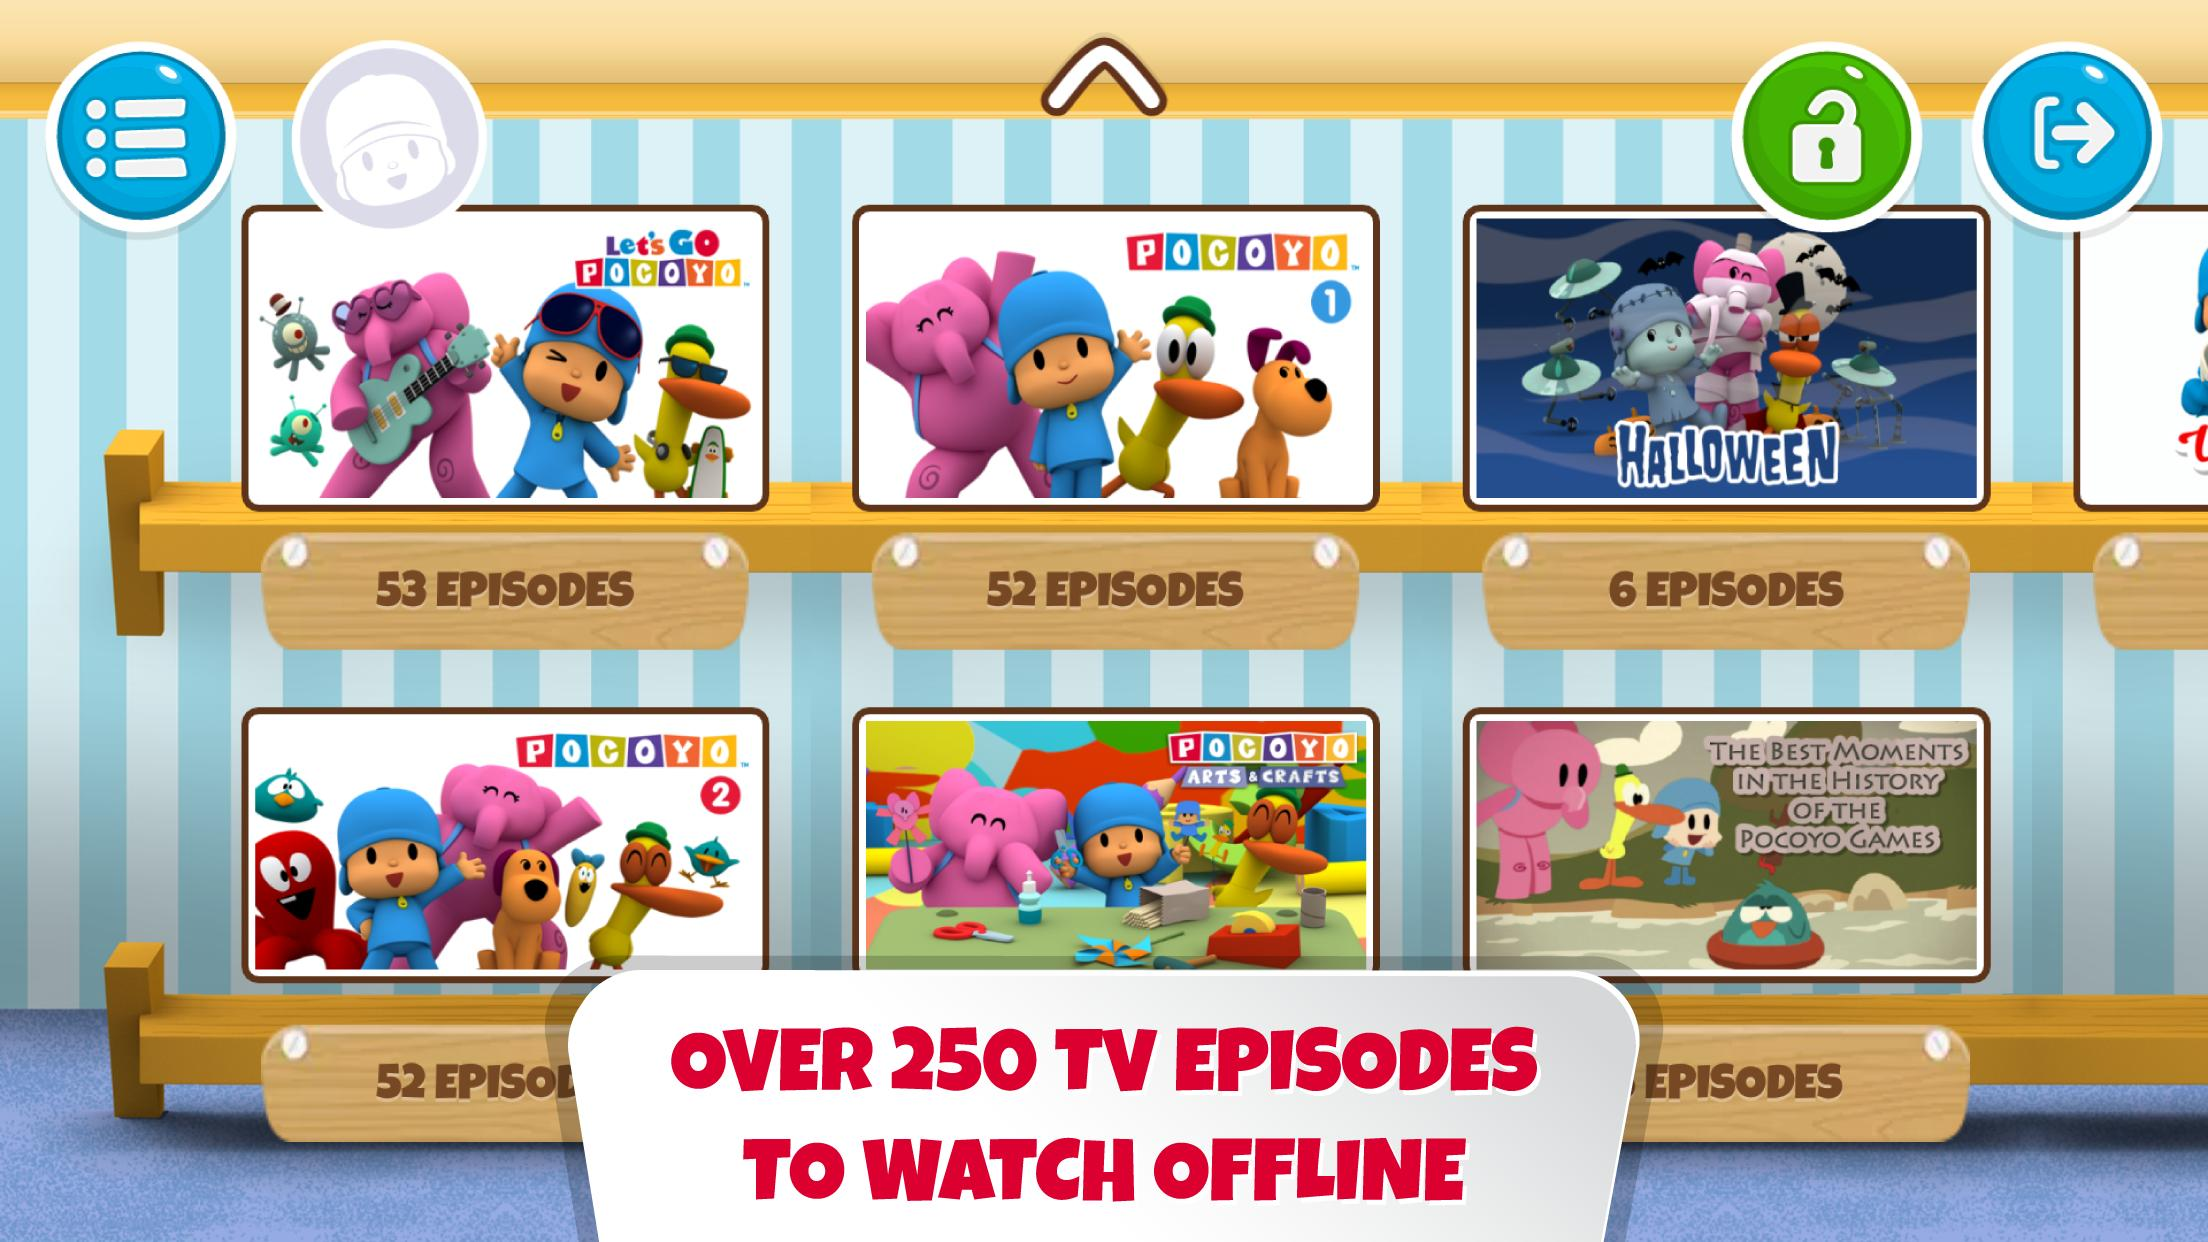 Pocoyo House best videos and apps for kids 3.1.3 Screenshot 2